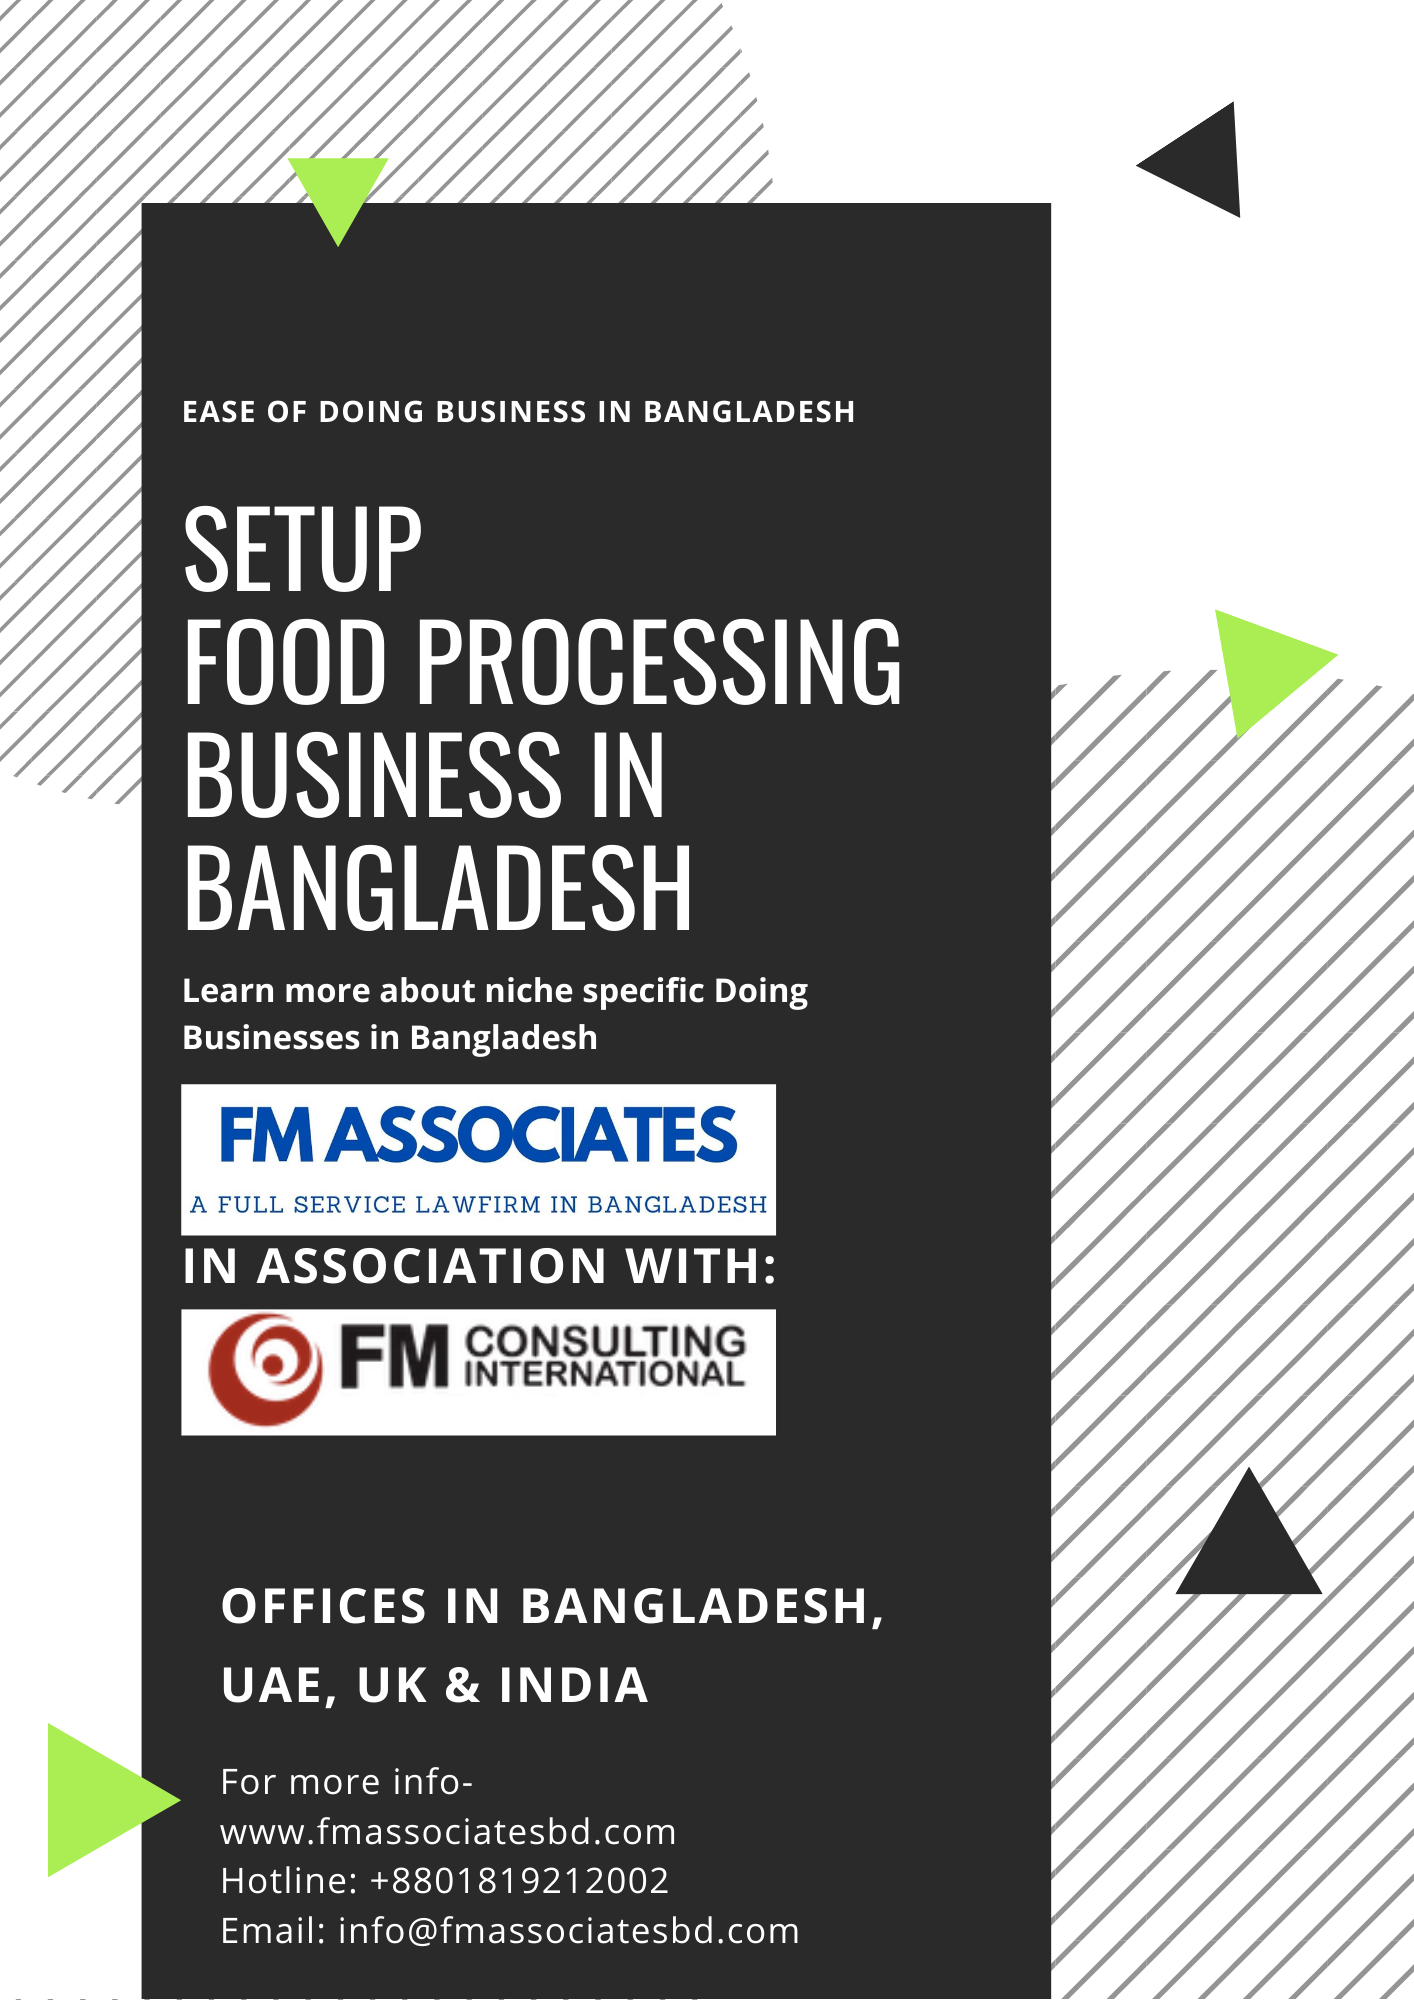 How to Setup Food Processing Business in Bangladesh